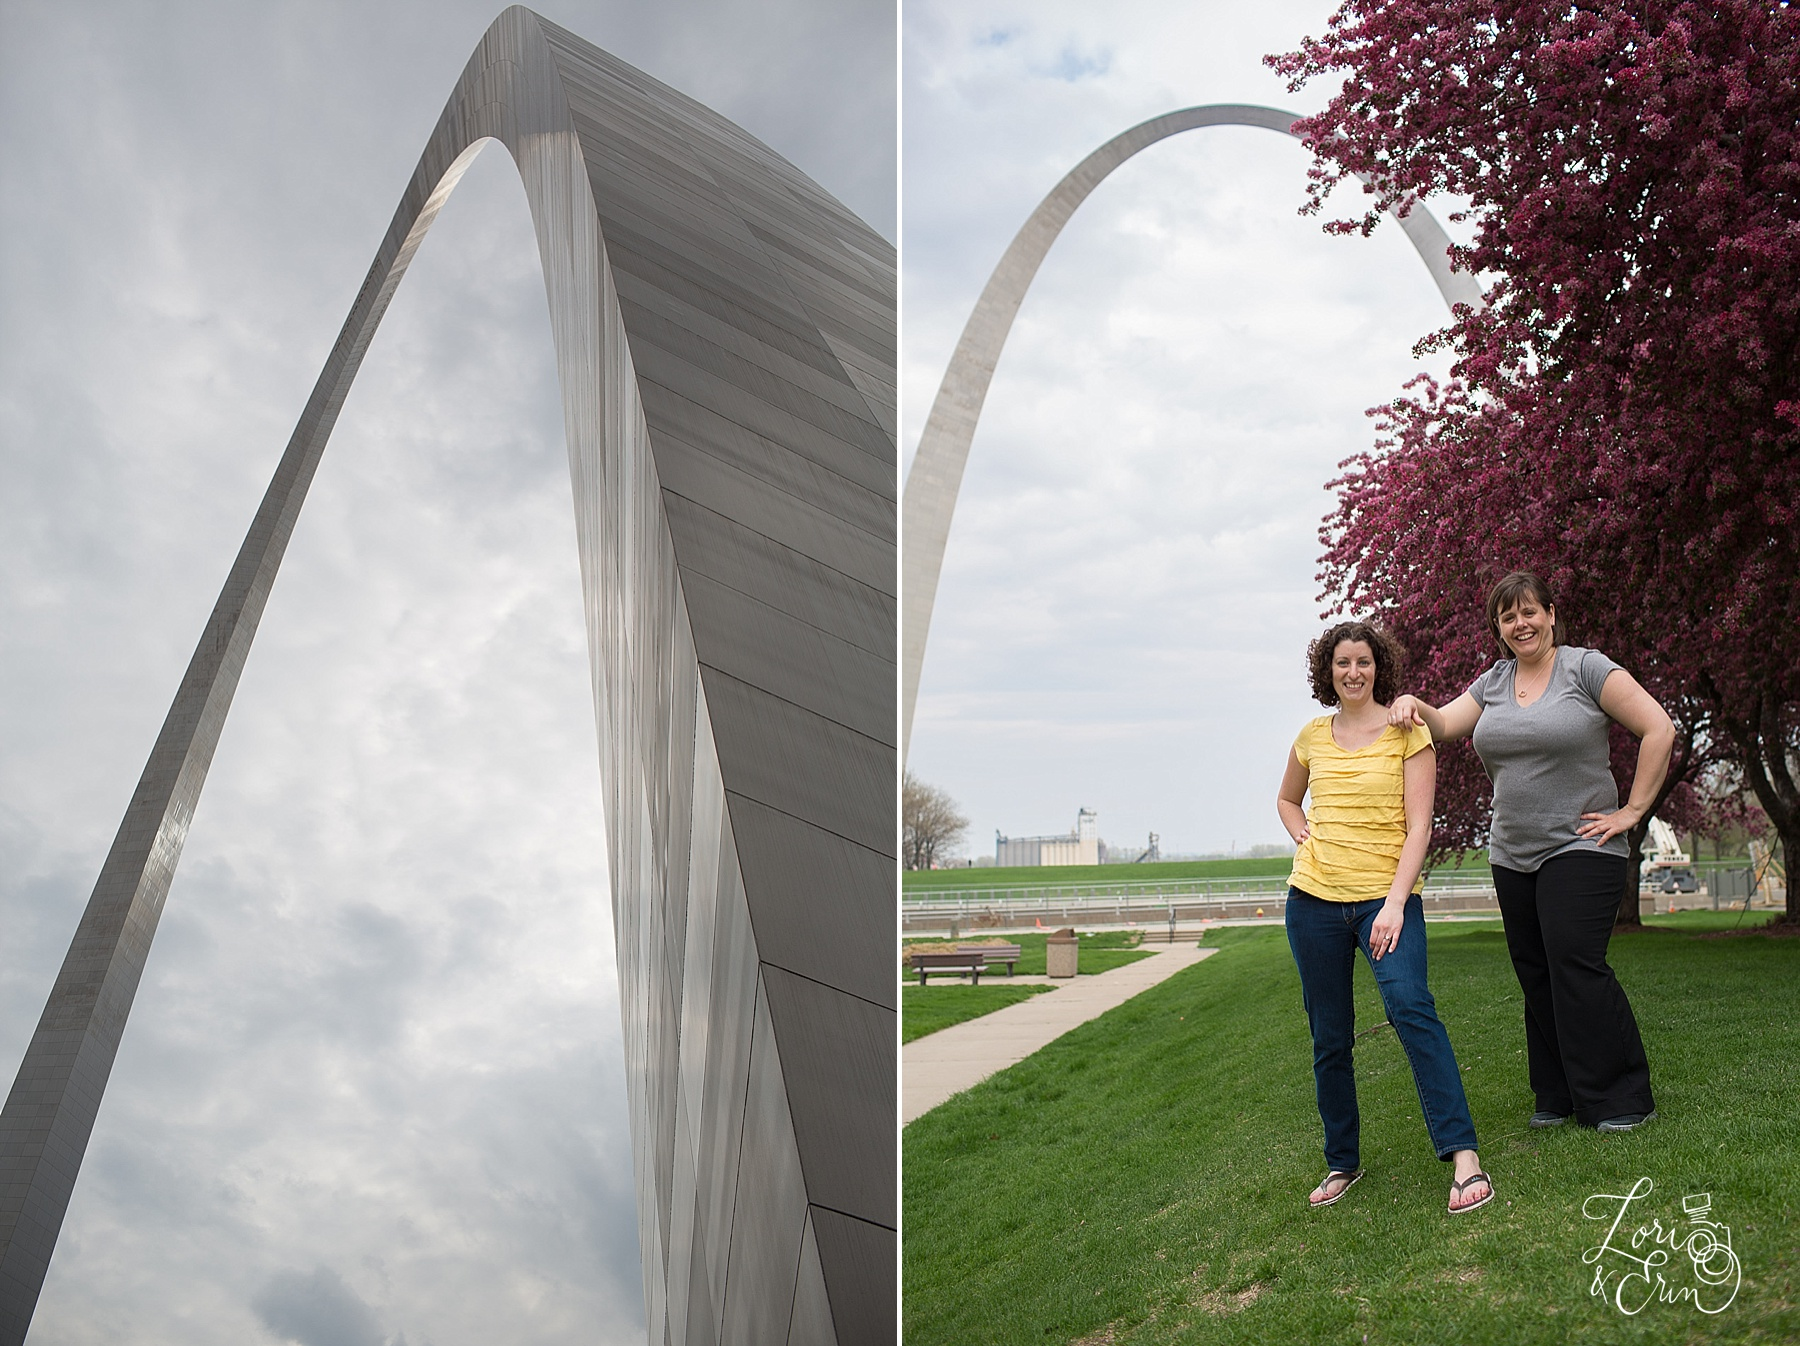 St. Louis Arch, Shutterfest Photography Conference